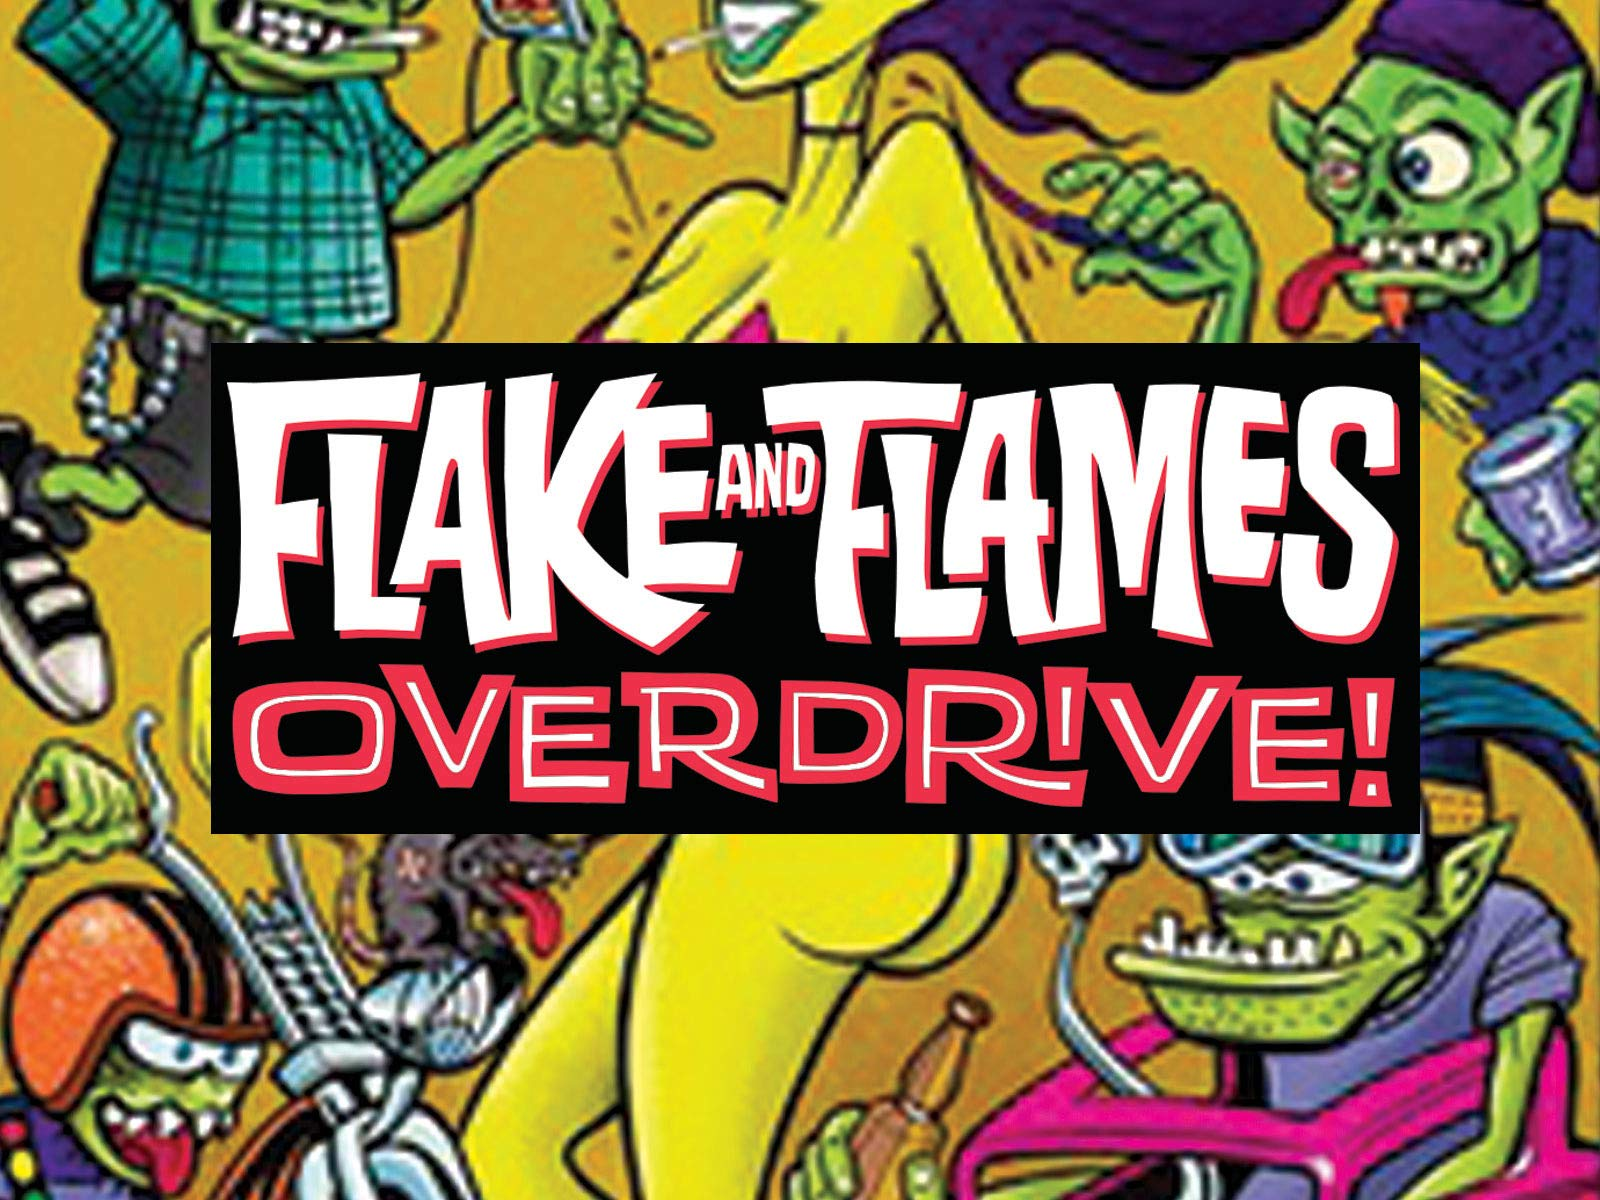 Flake and Flames Overdrive